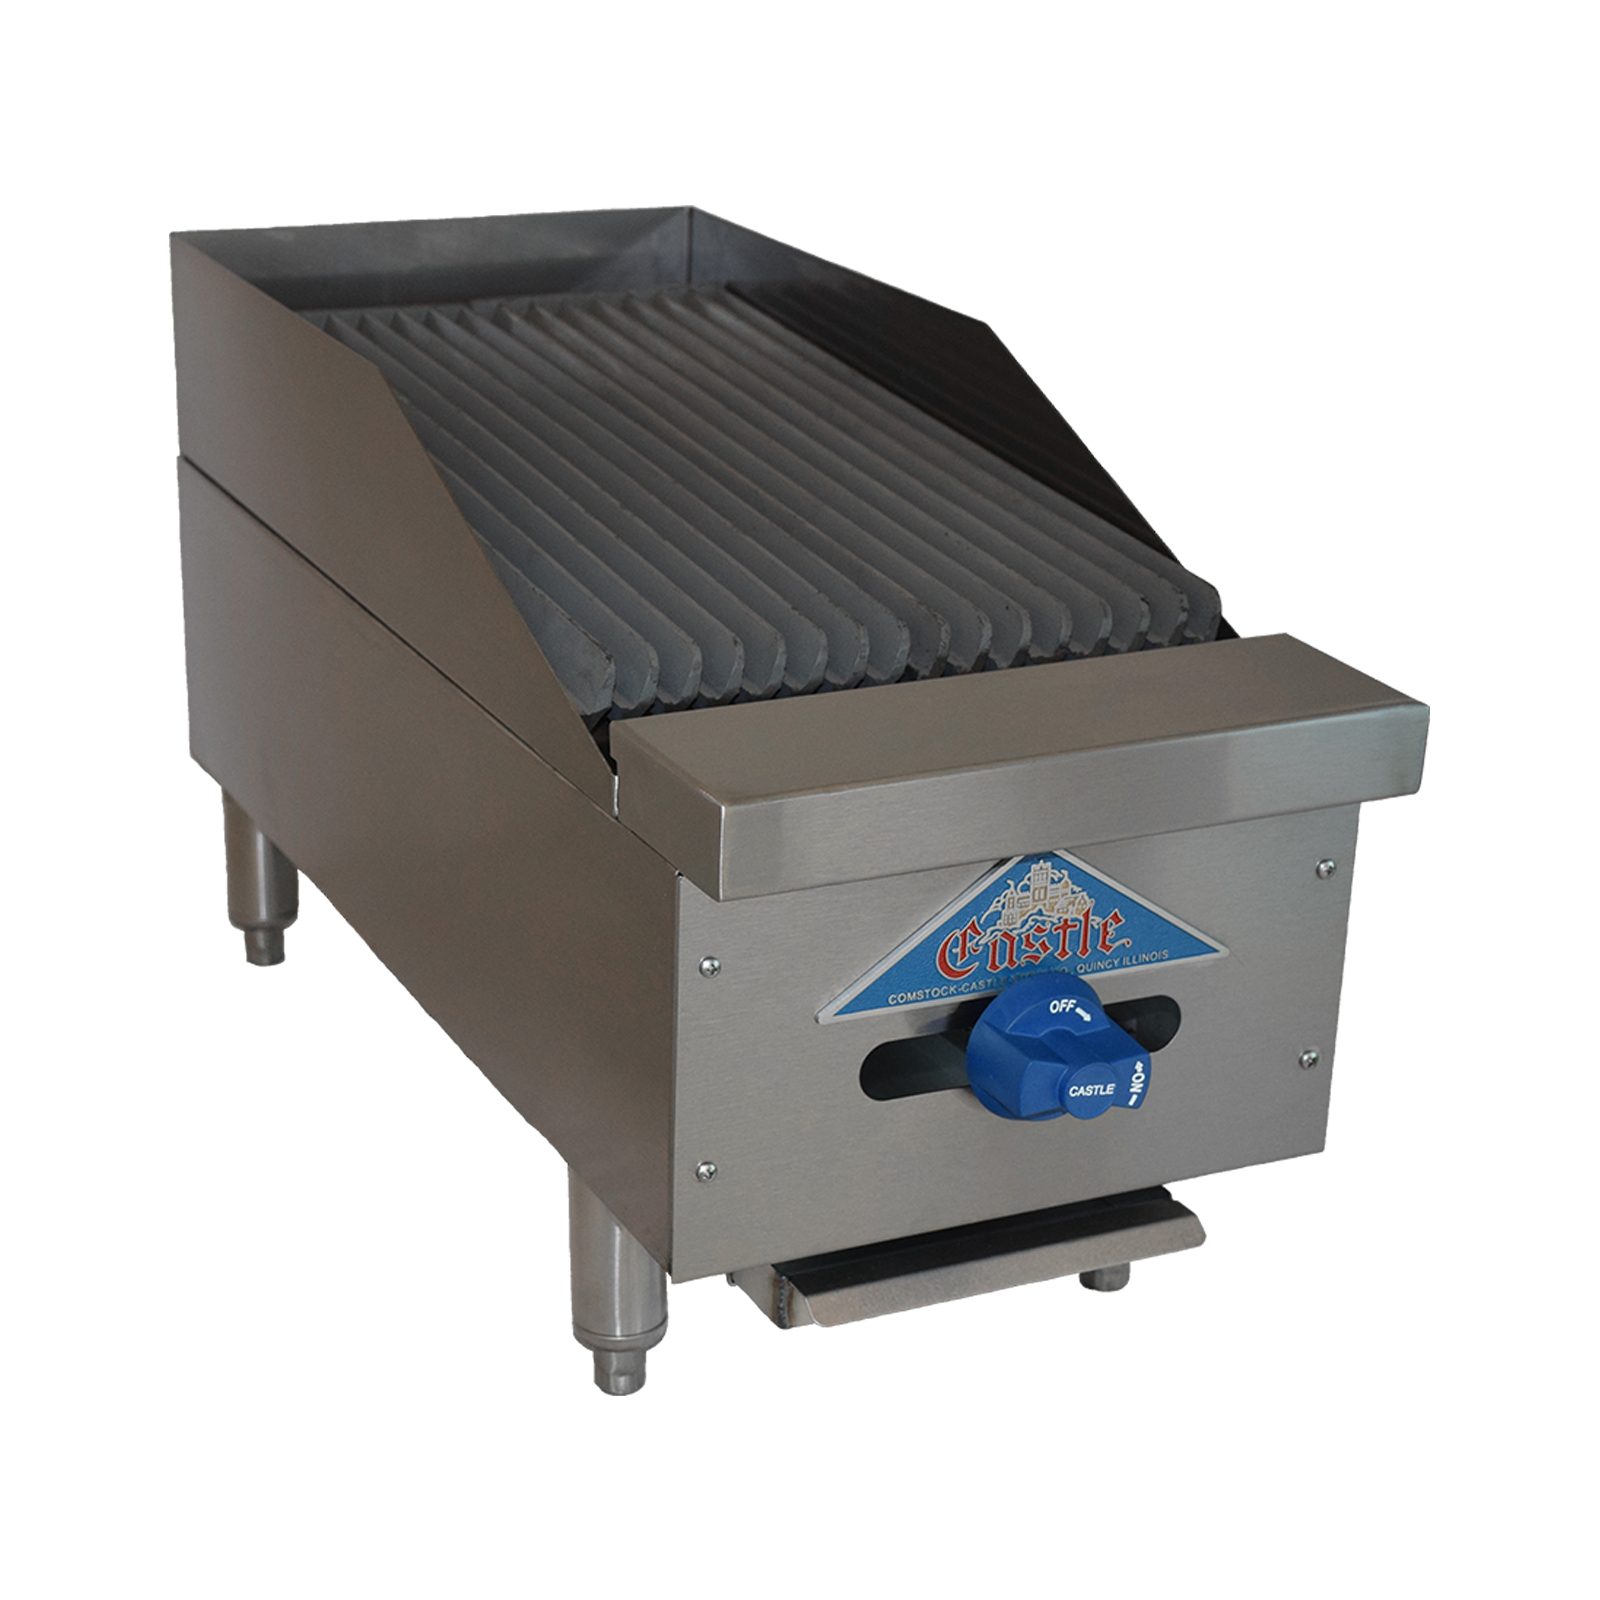 Comstock-Castle 3212RB charbroiler, gas, countertop